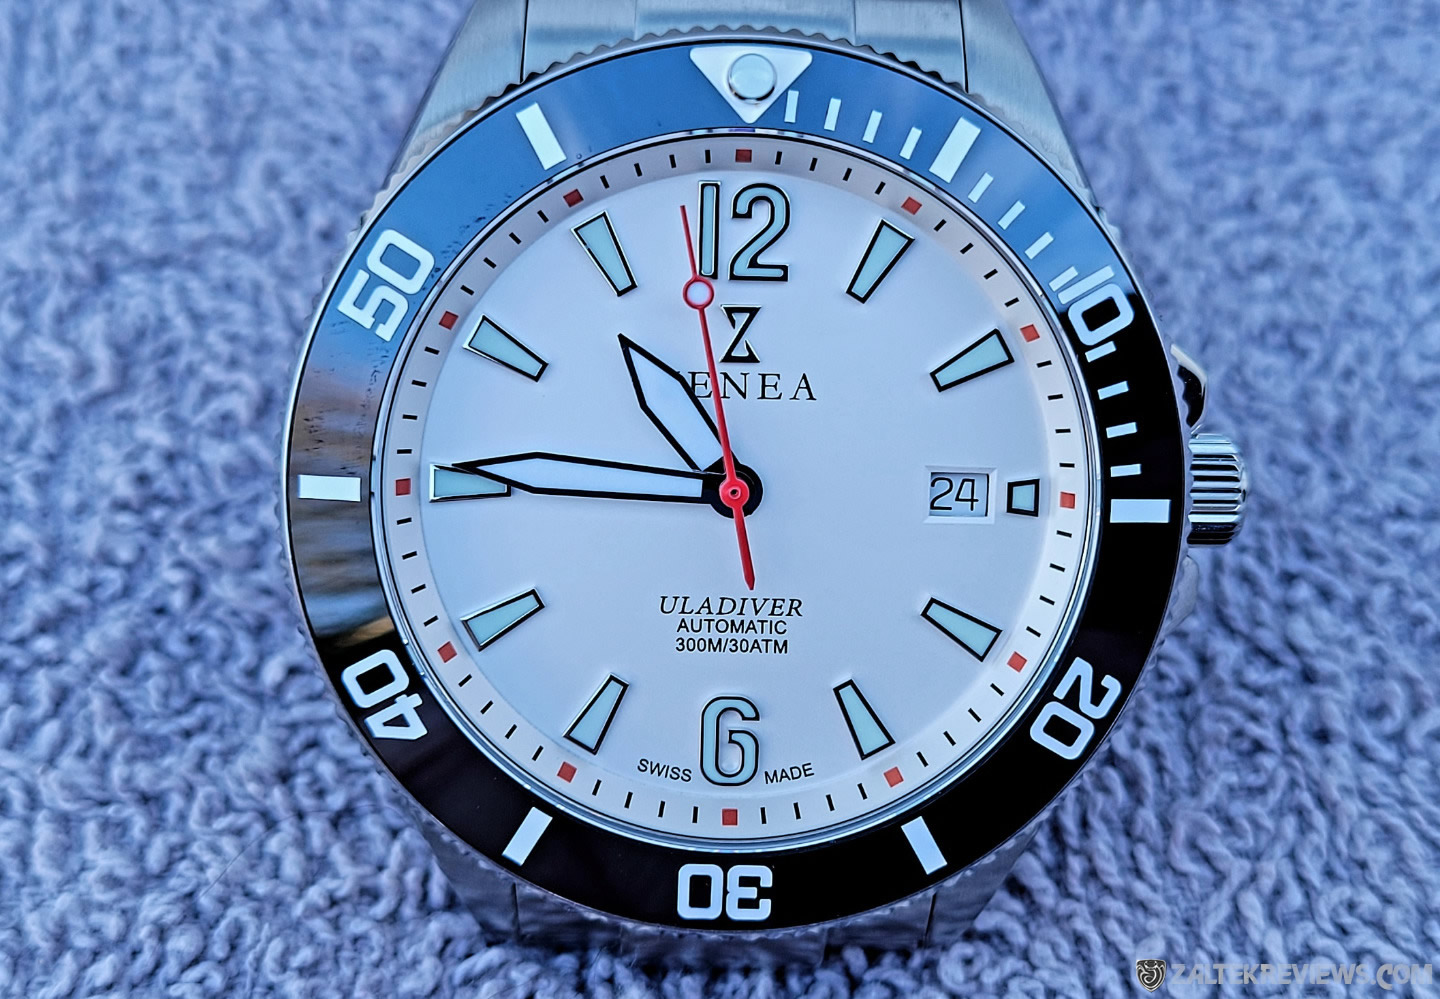 Zenea Ula Diver Review